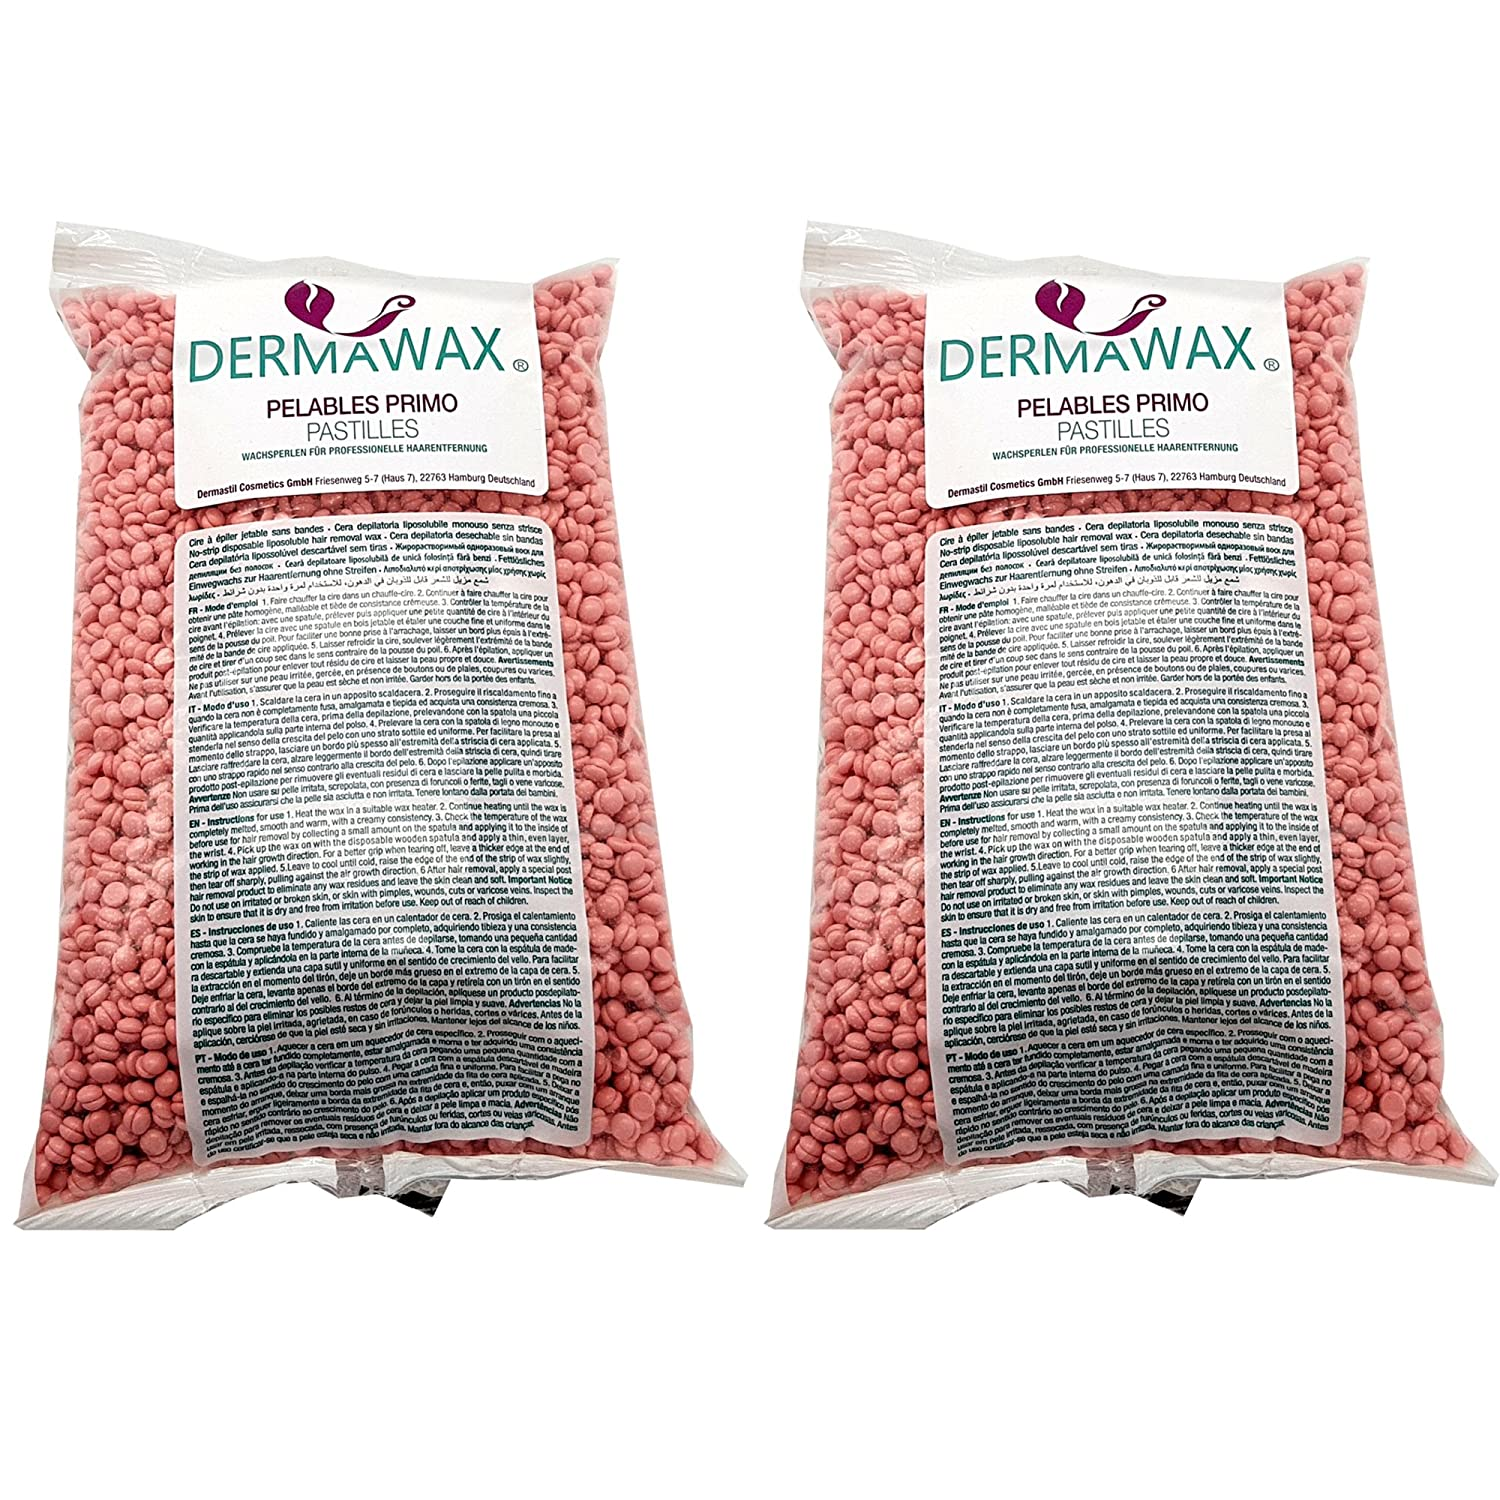 2kg Pink TIO2 Low Temperature Premium Wax Beads for Depilation, Body Hair Removal Dermastil